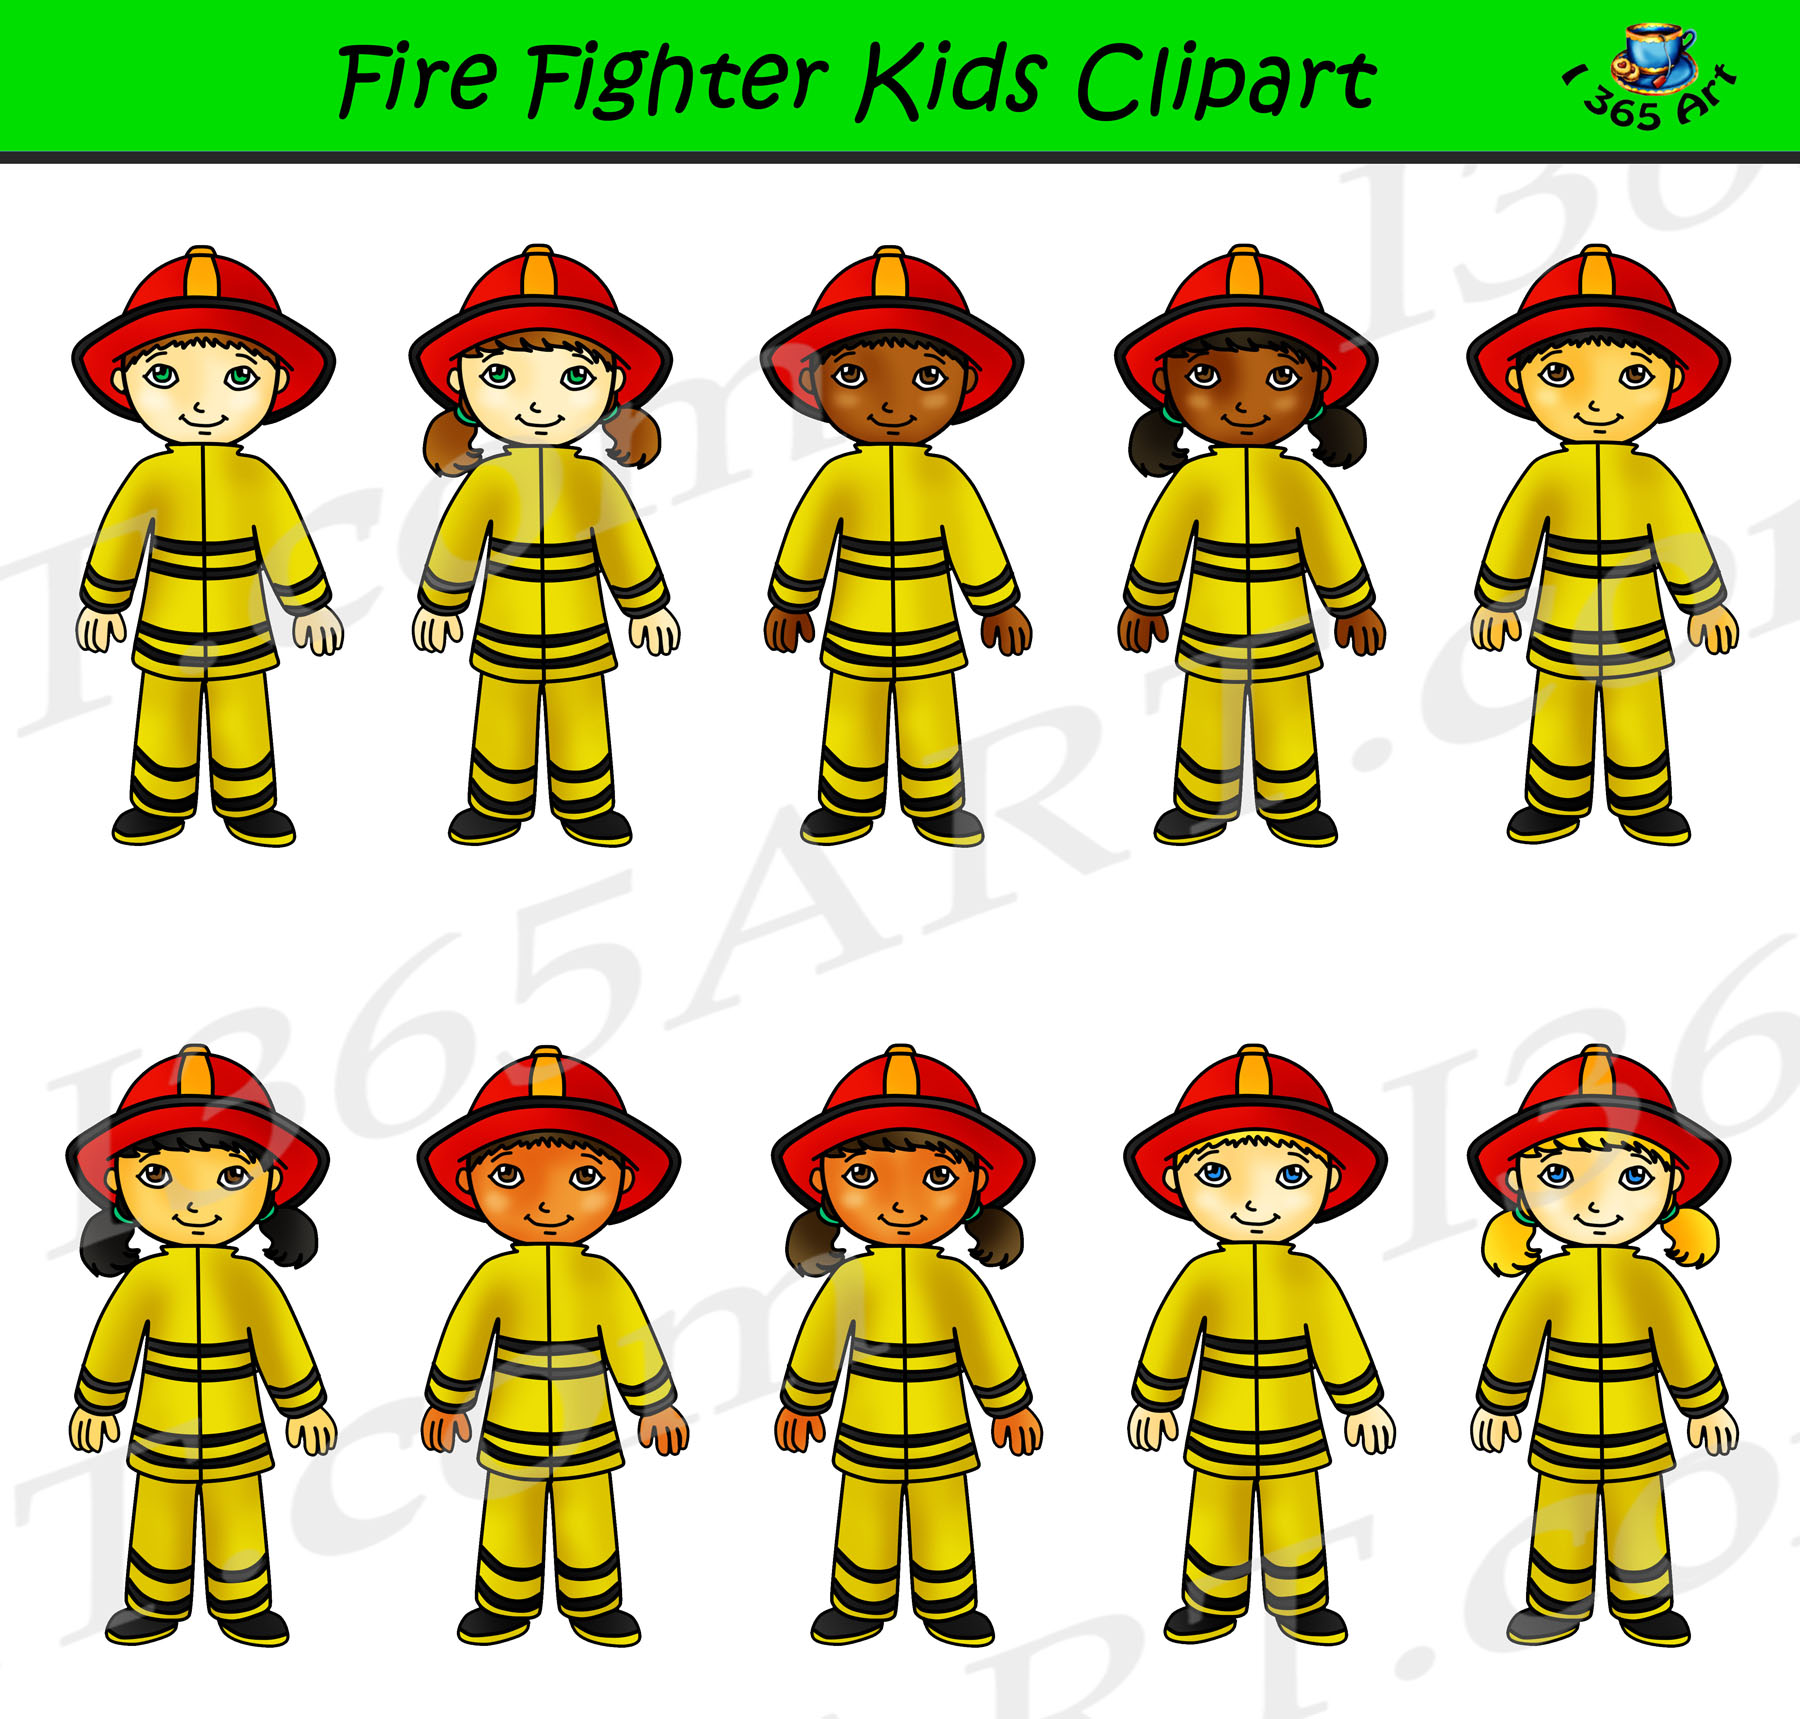 Firefighter Clipart Kids Career Day Graphics Clipart 4 School